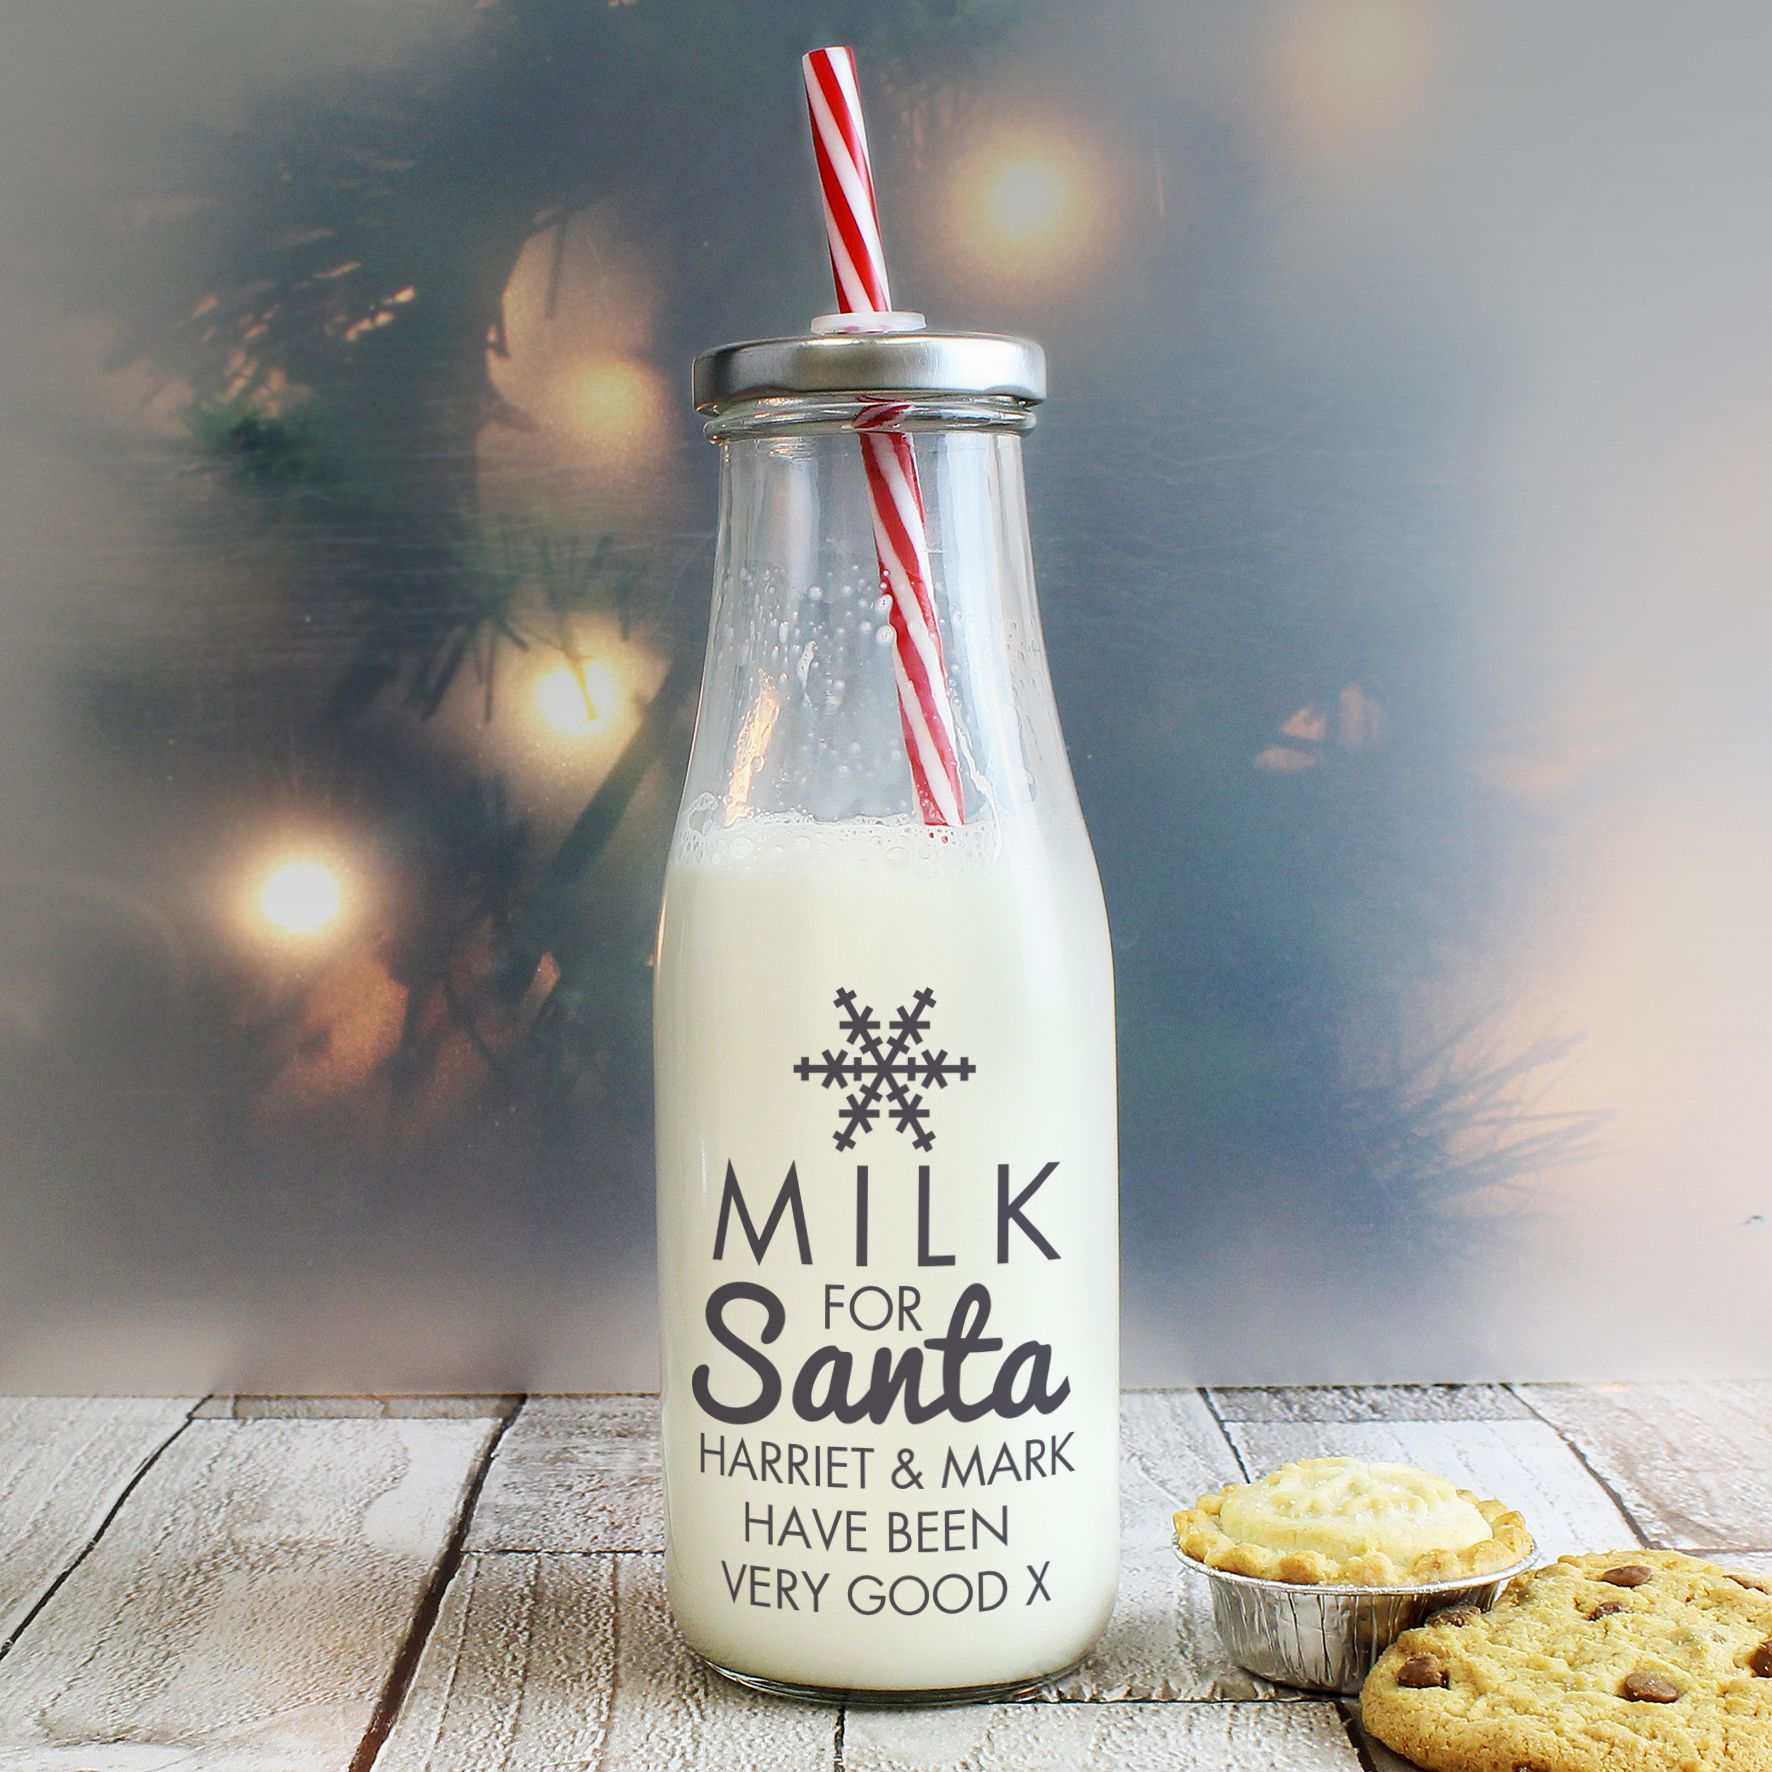 Milk for Santa 5,10 or 20 vinyl decal DIY stickers,milk bottles wine glass...